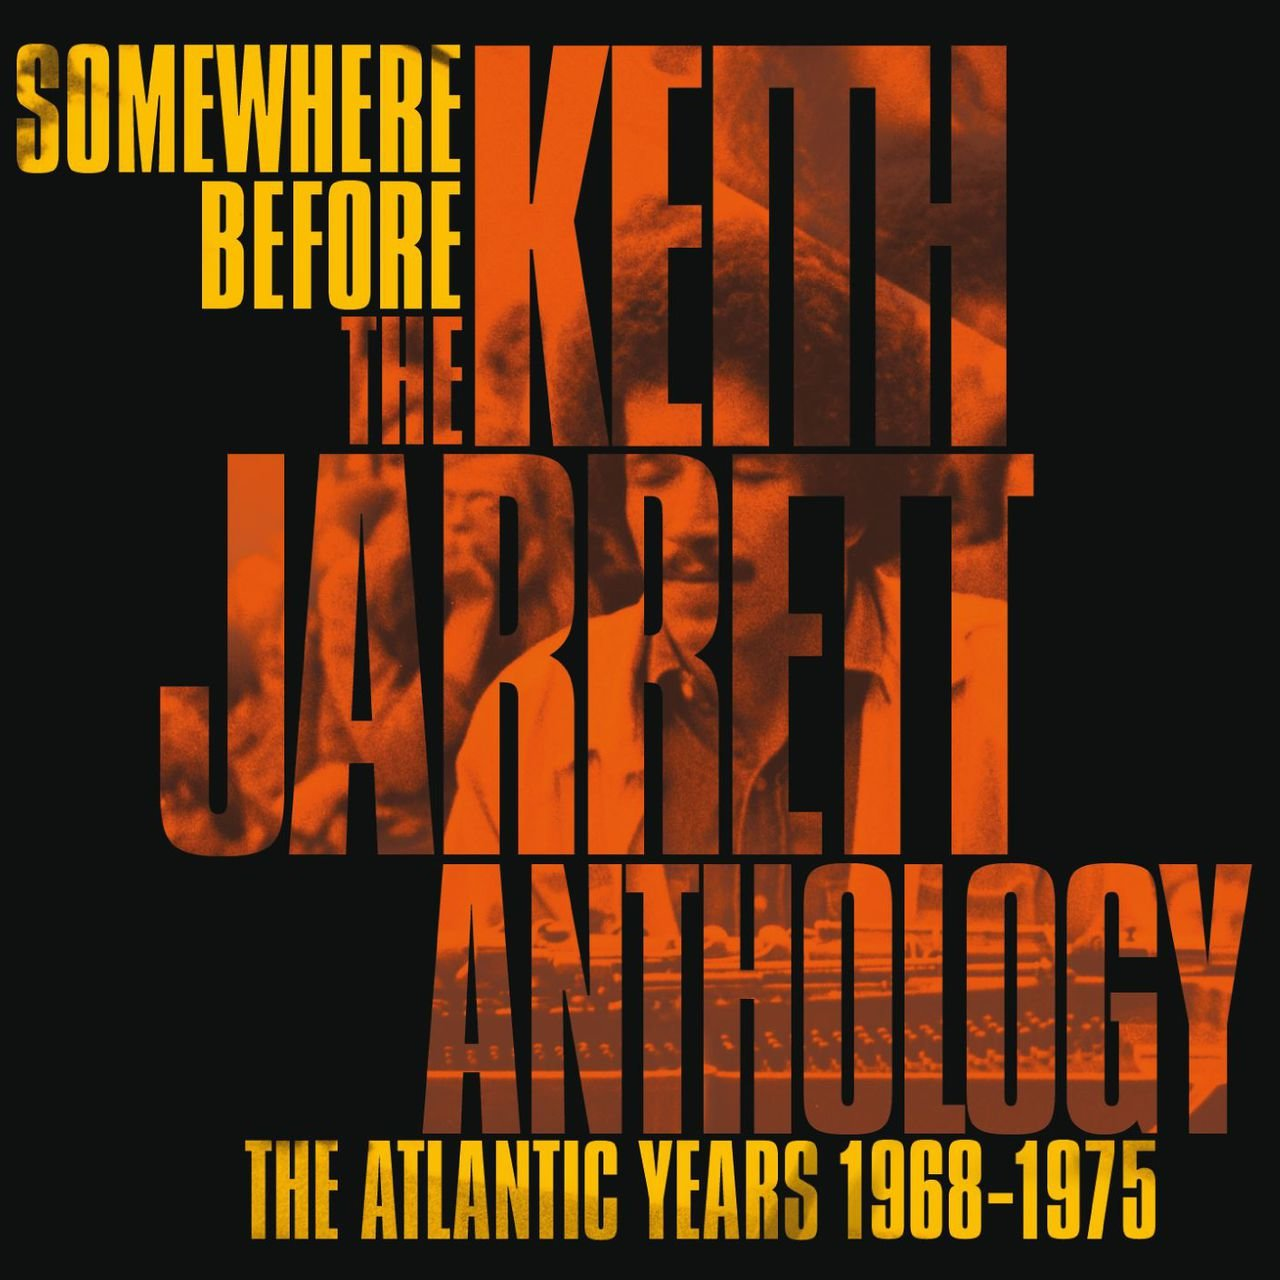 Somewhere Before - Atlantic Records Years 1968-1975